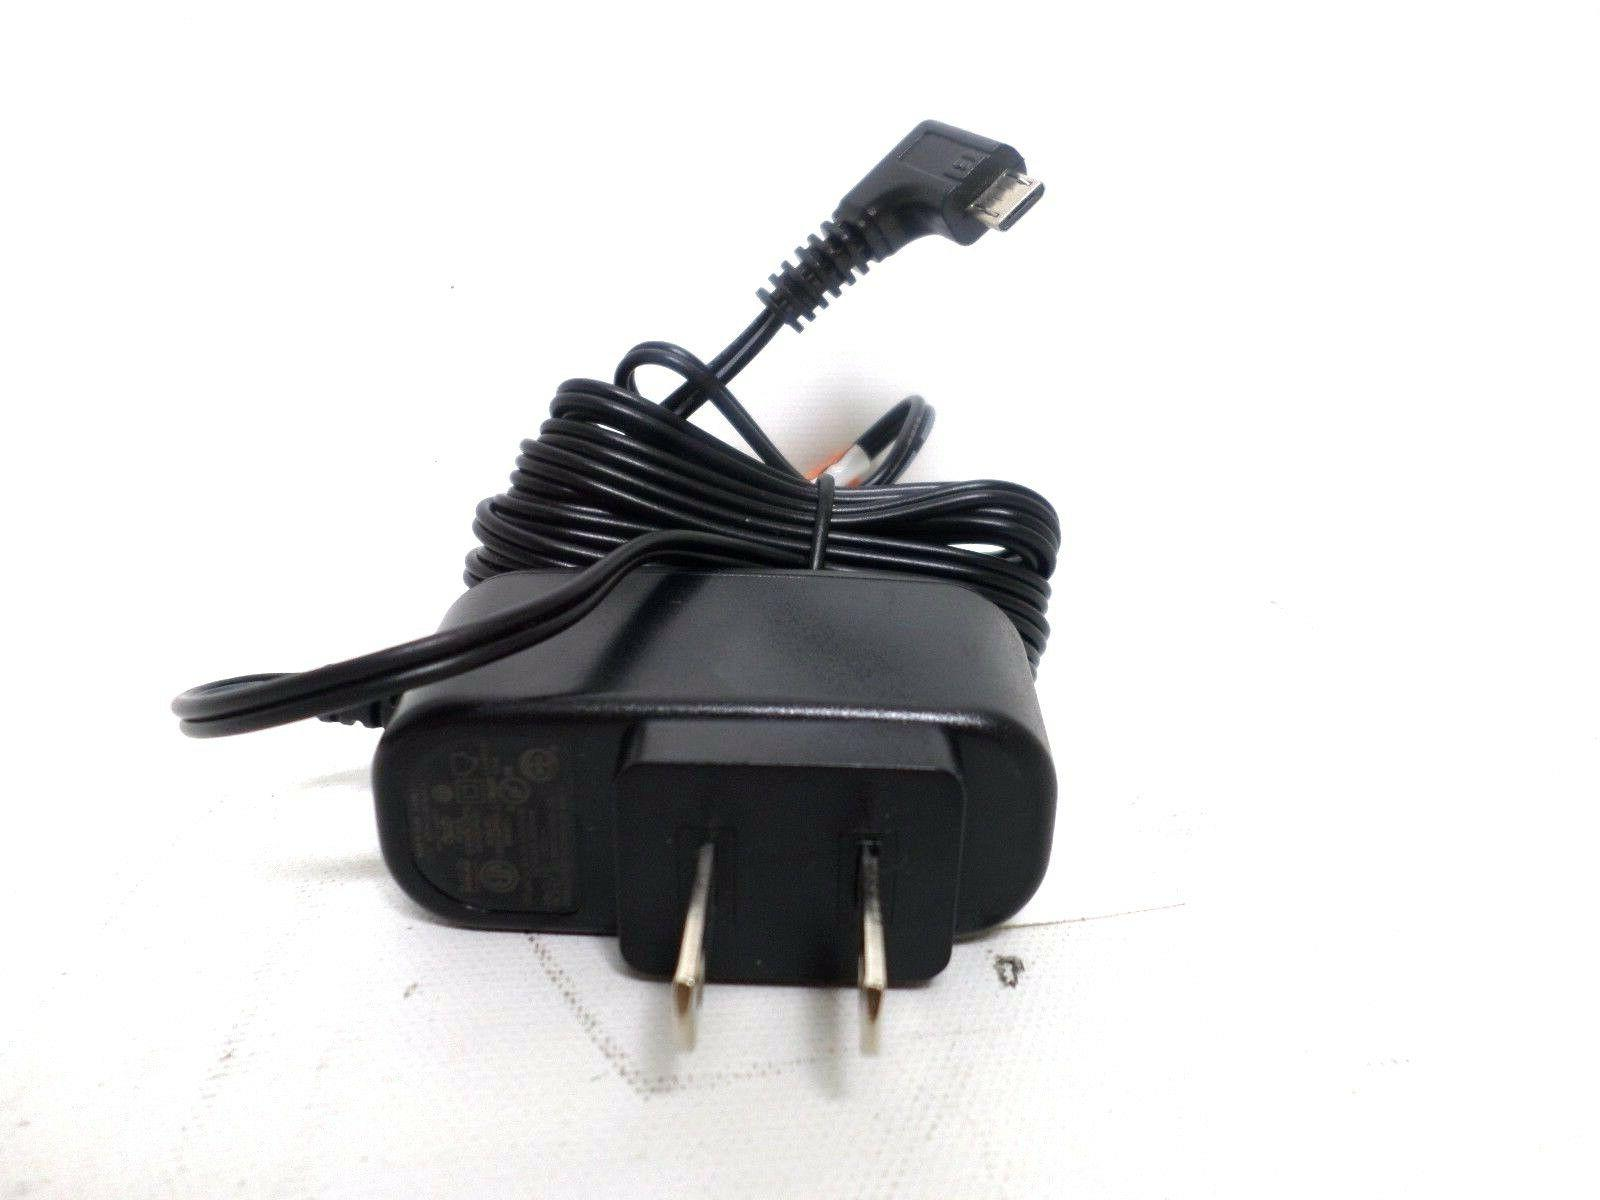 NEW MICRO USB Power Supply Cord for Motorola BABY MONITOR OE